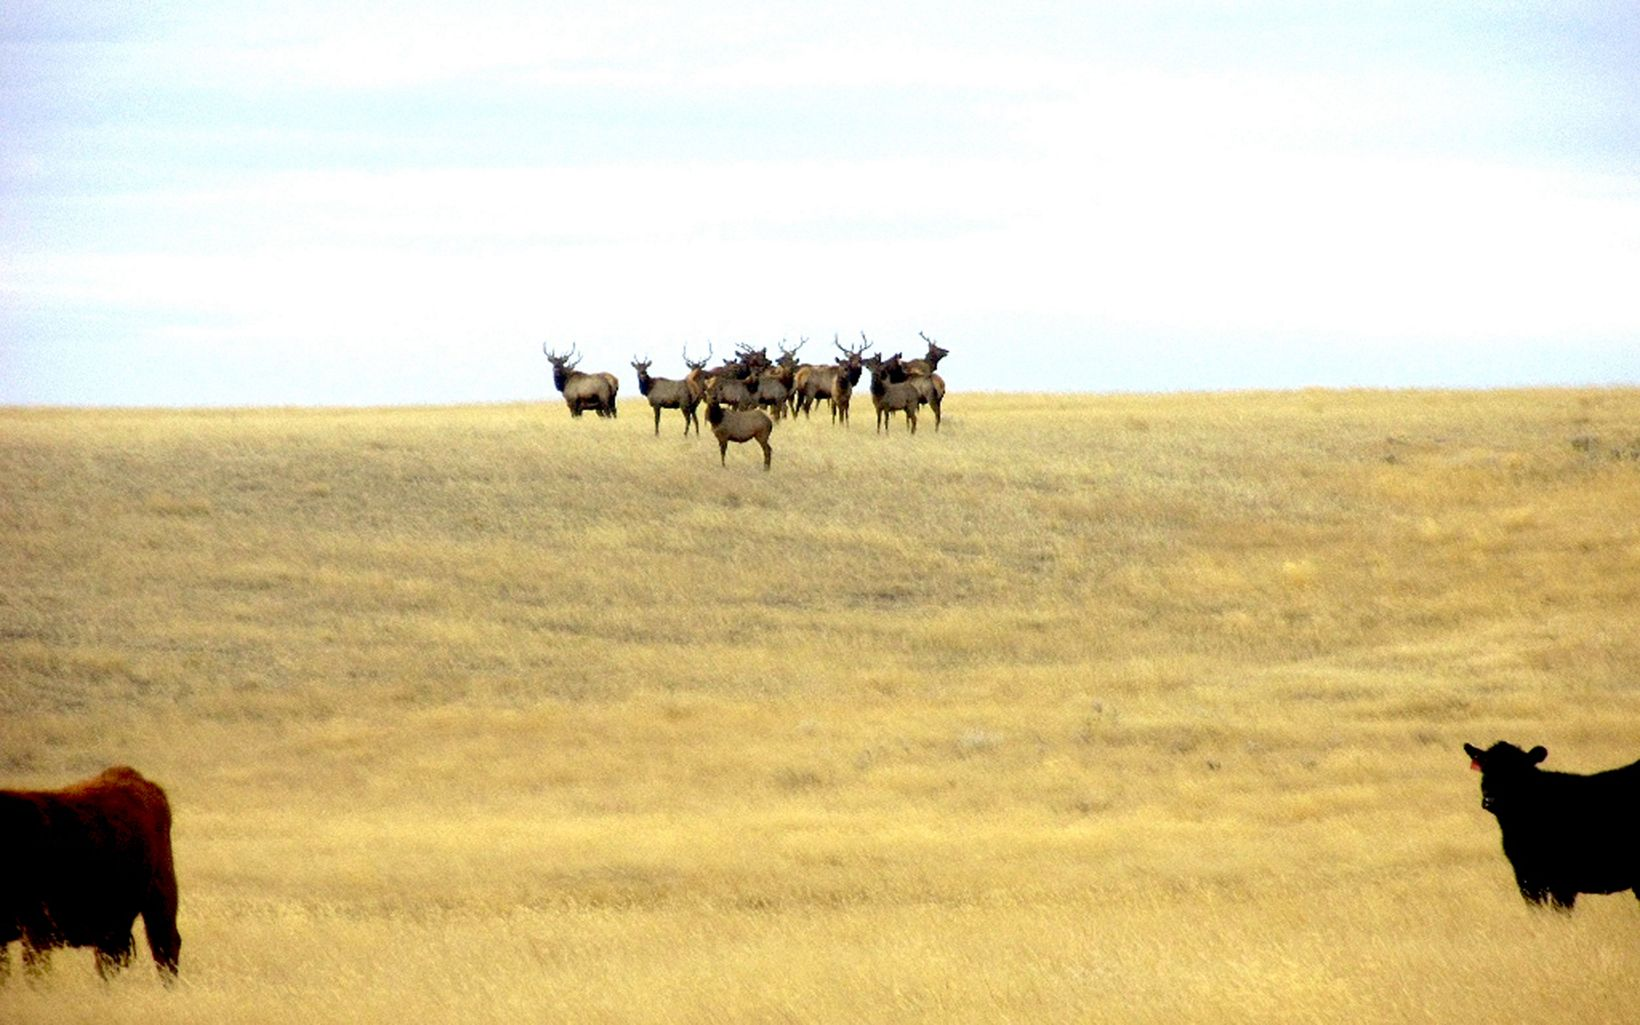 TNC's goal is to conserve grassland through direct land protection and partnership with the local ranching community.